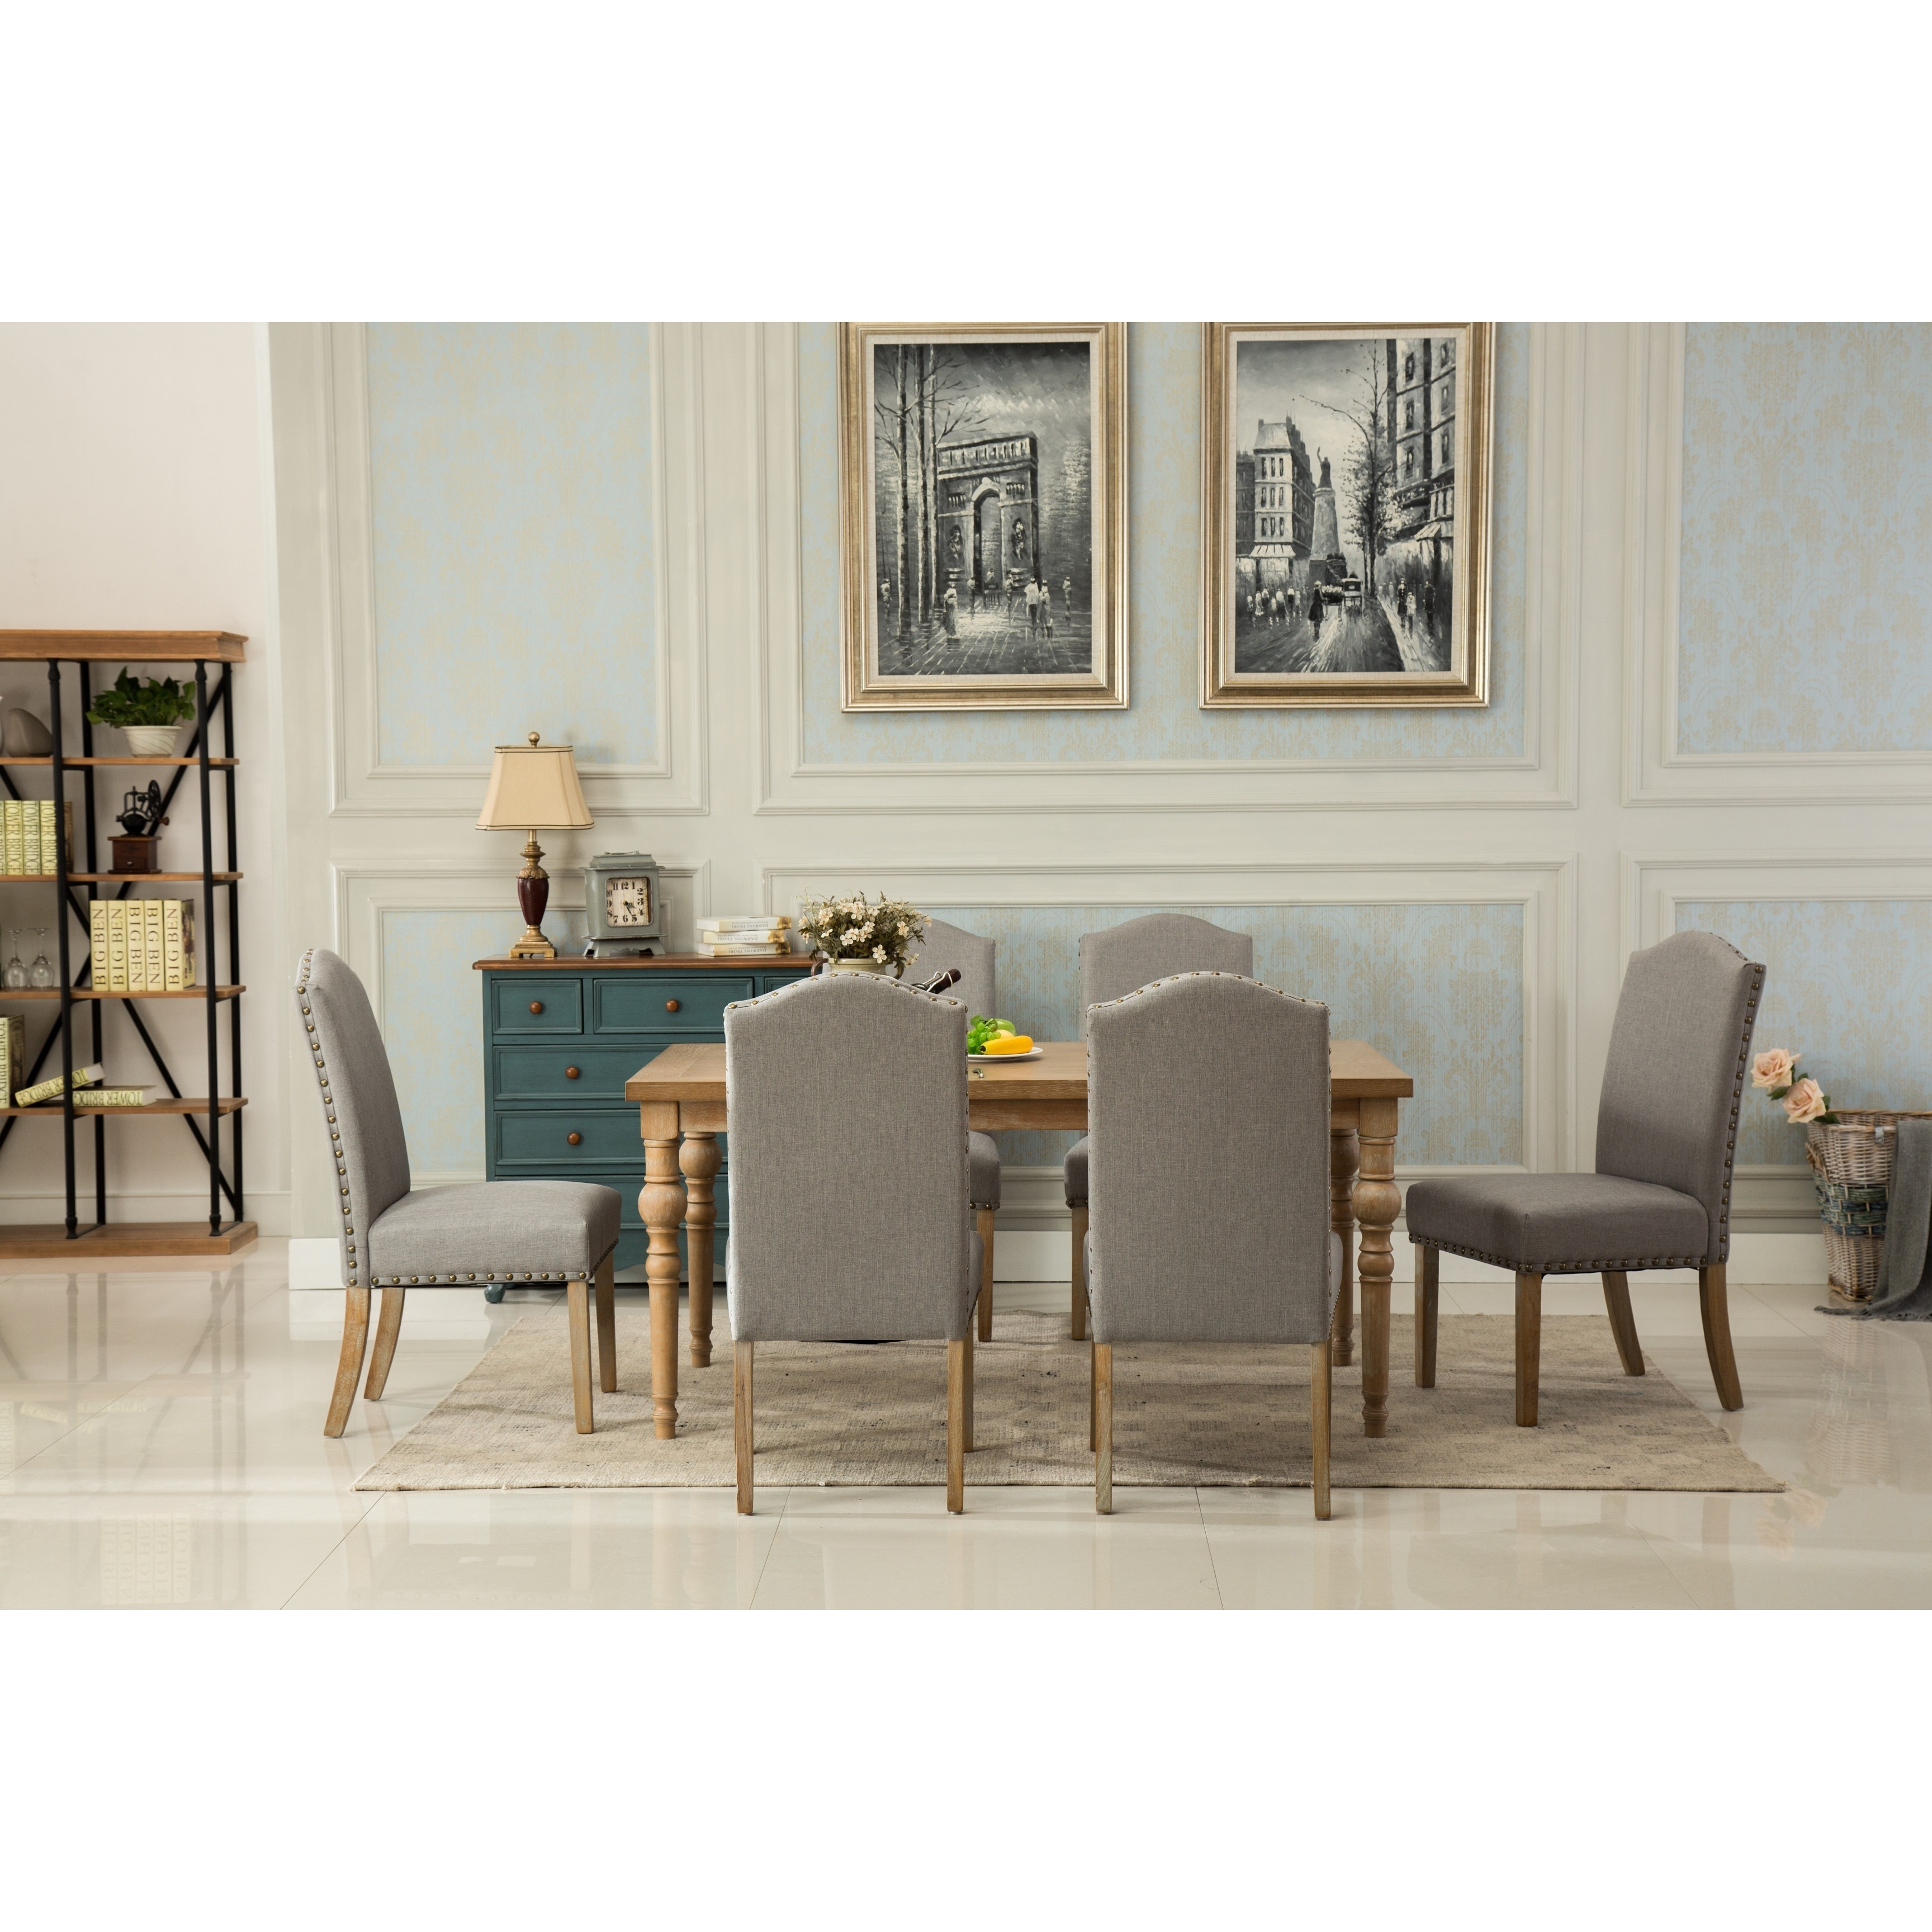 Habitanian Solid Wood Dining Table With 6 Nailhead Chairs Free Shipping Today 21146683